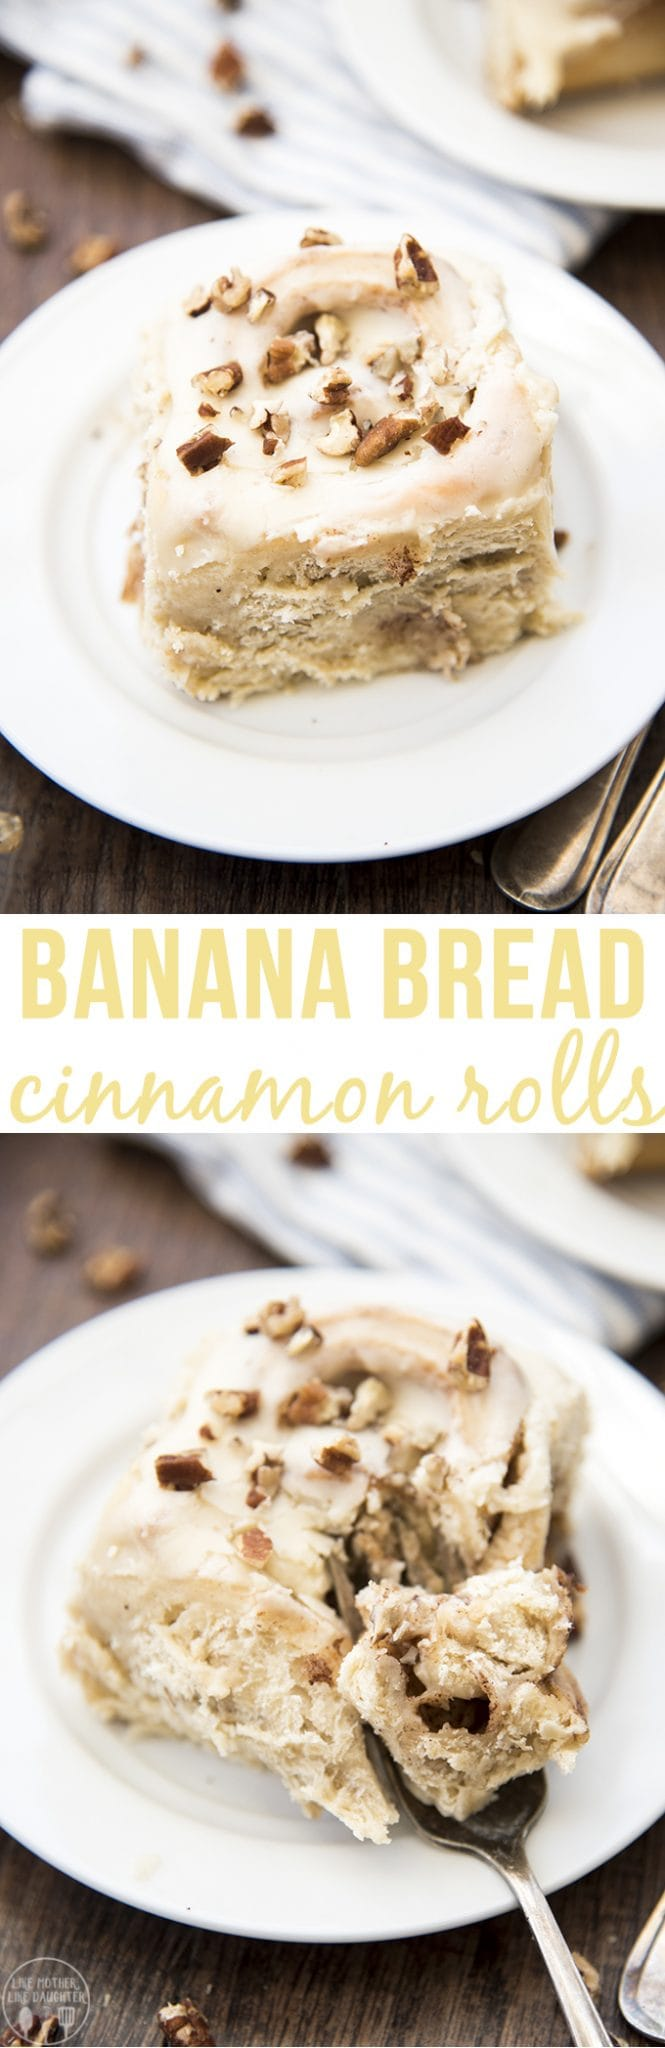 These banana bread cinnamon rolls have the perfect taste of banana throughout the soft and fluffy rolls. Topped with an amazing cream cheese frosting!